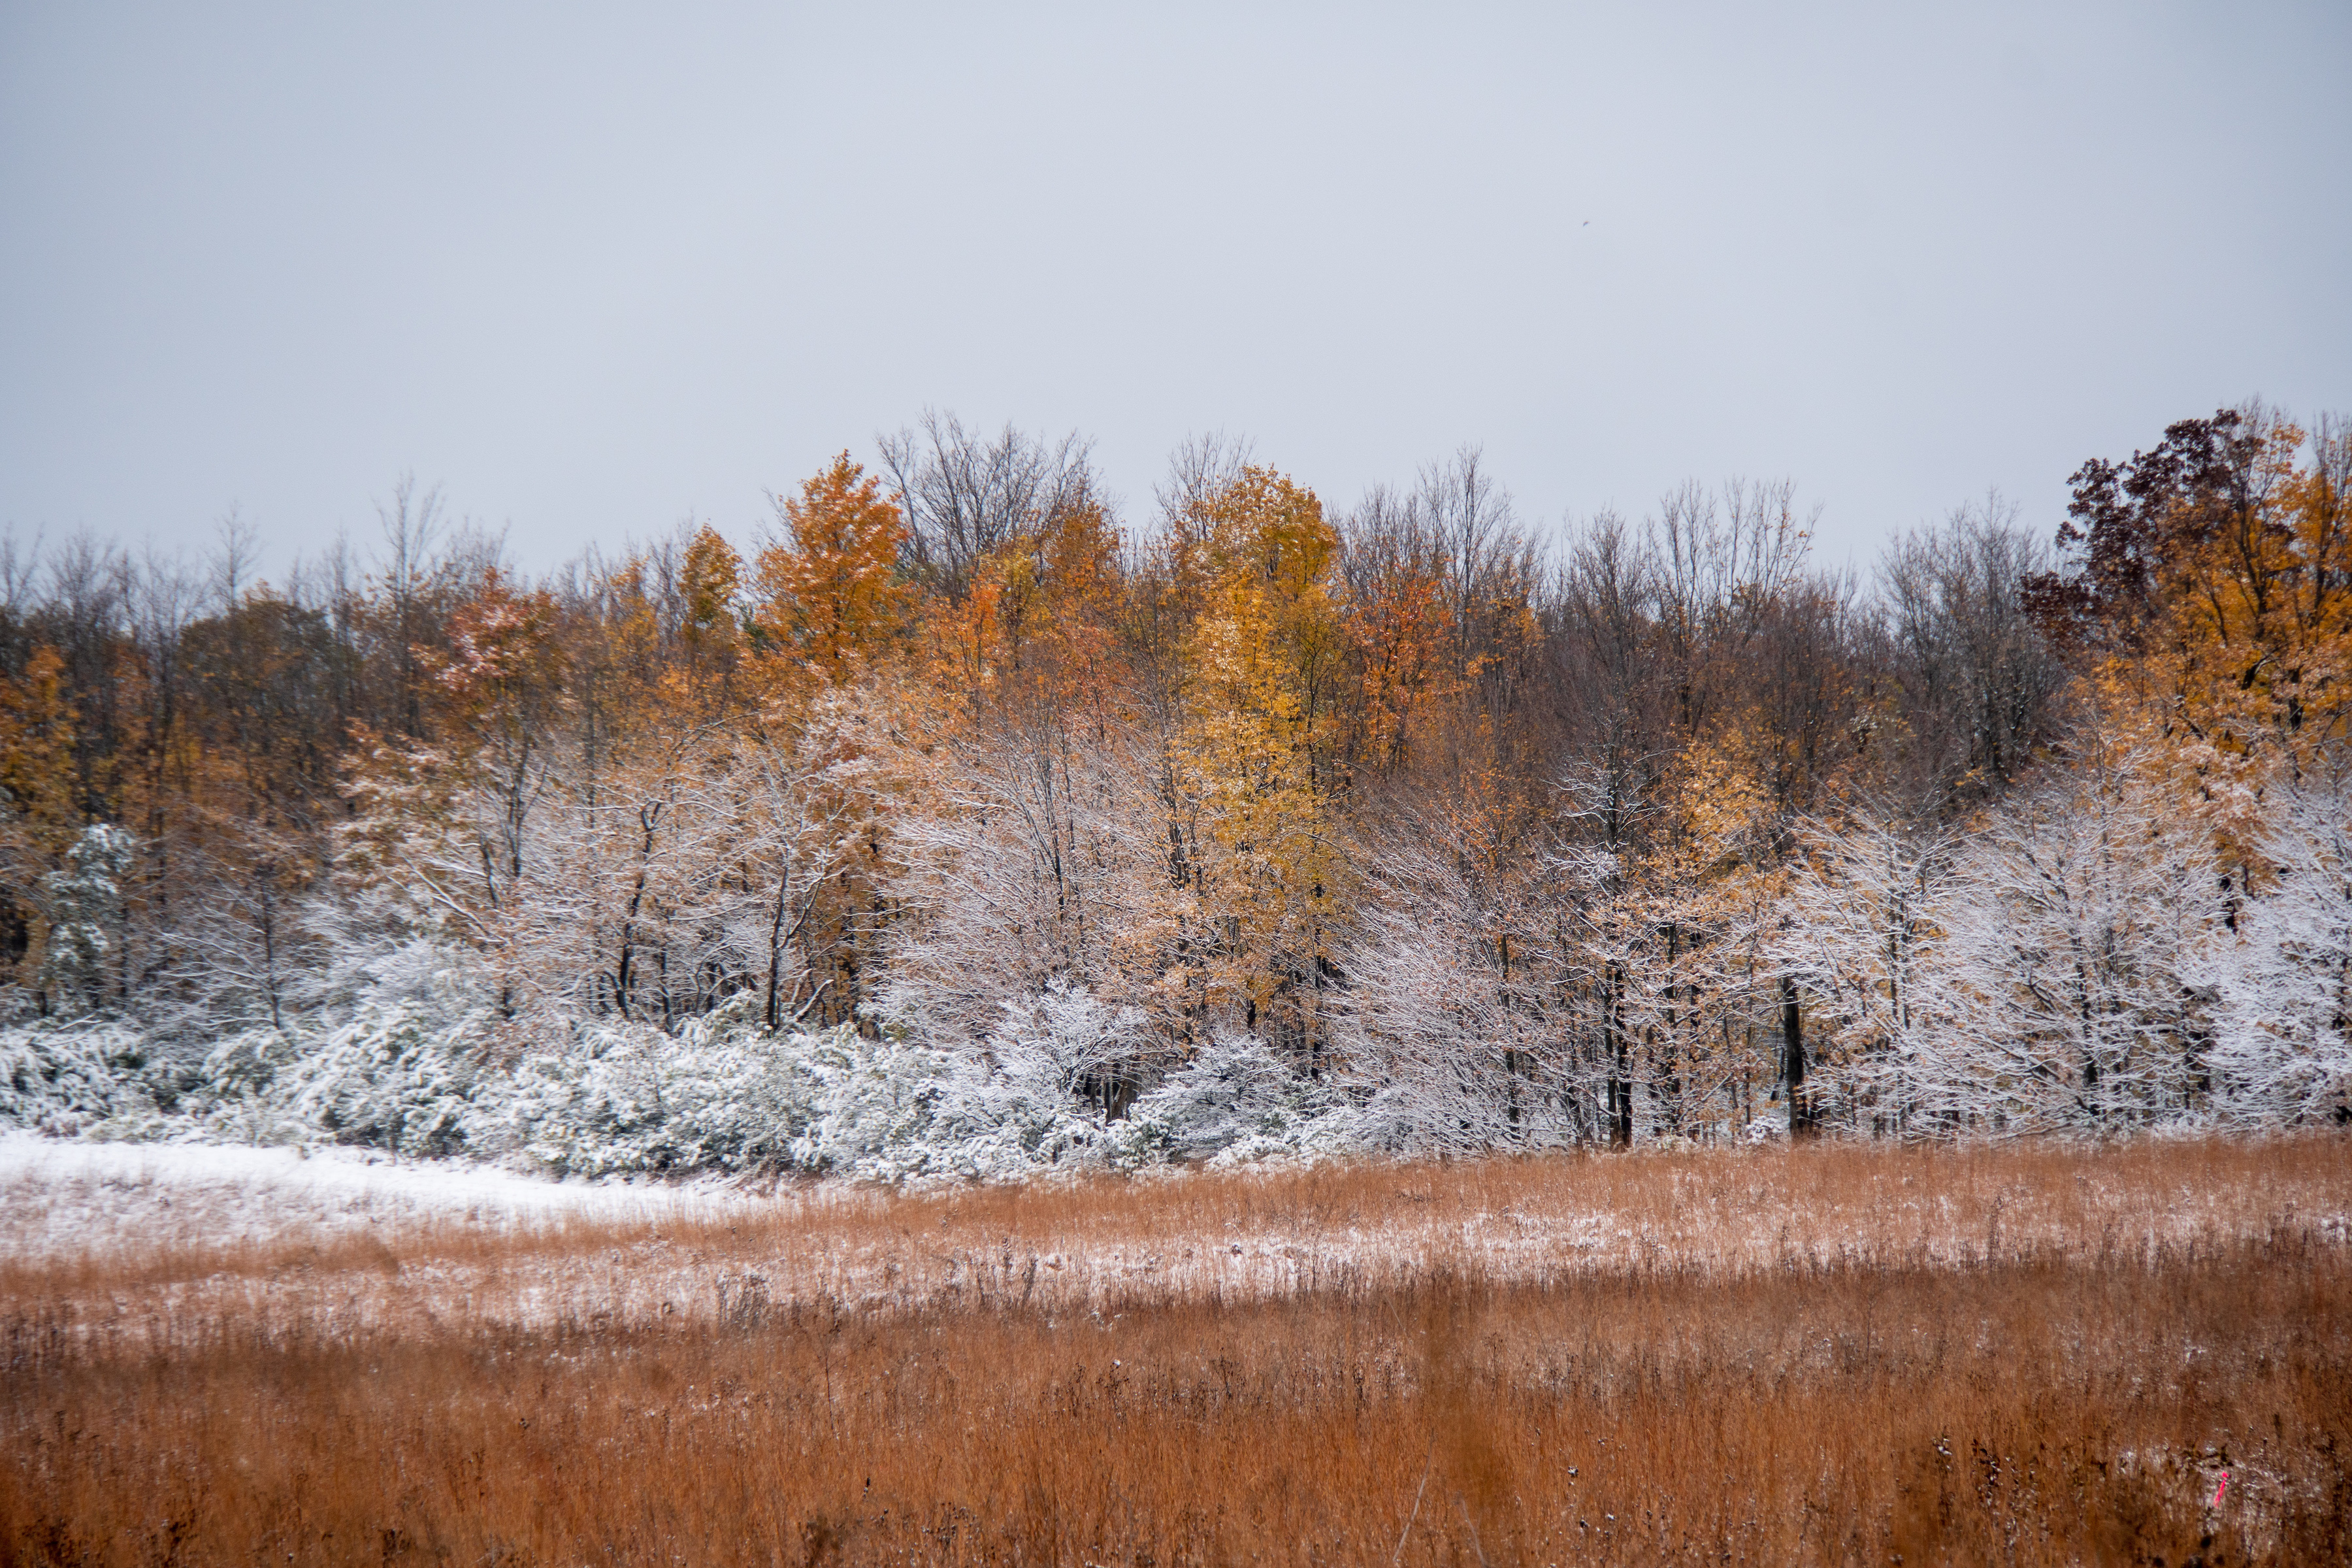 From a distance, the slow arrival of winter is evident. What a difference a day makes. nature, landscape, autumn, fall, winter, snow, woods, plant, tree Photo: Marguerite Tonjes